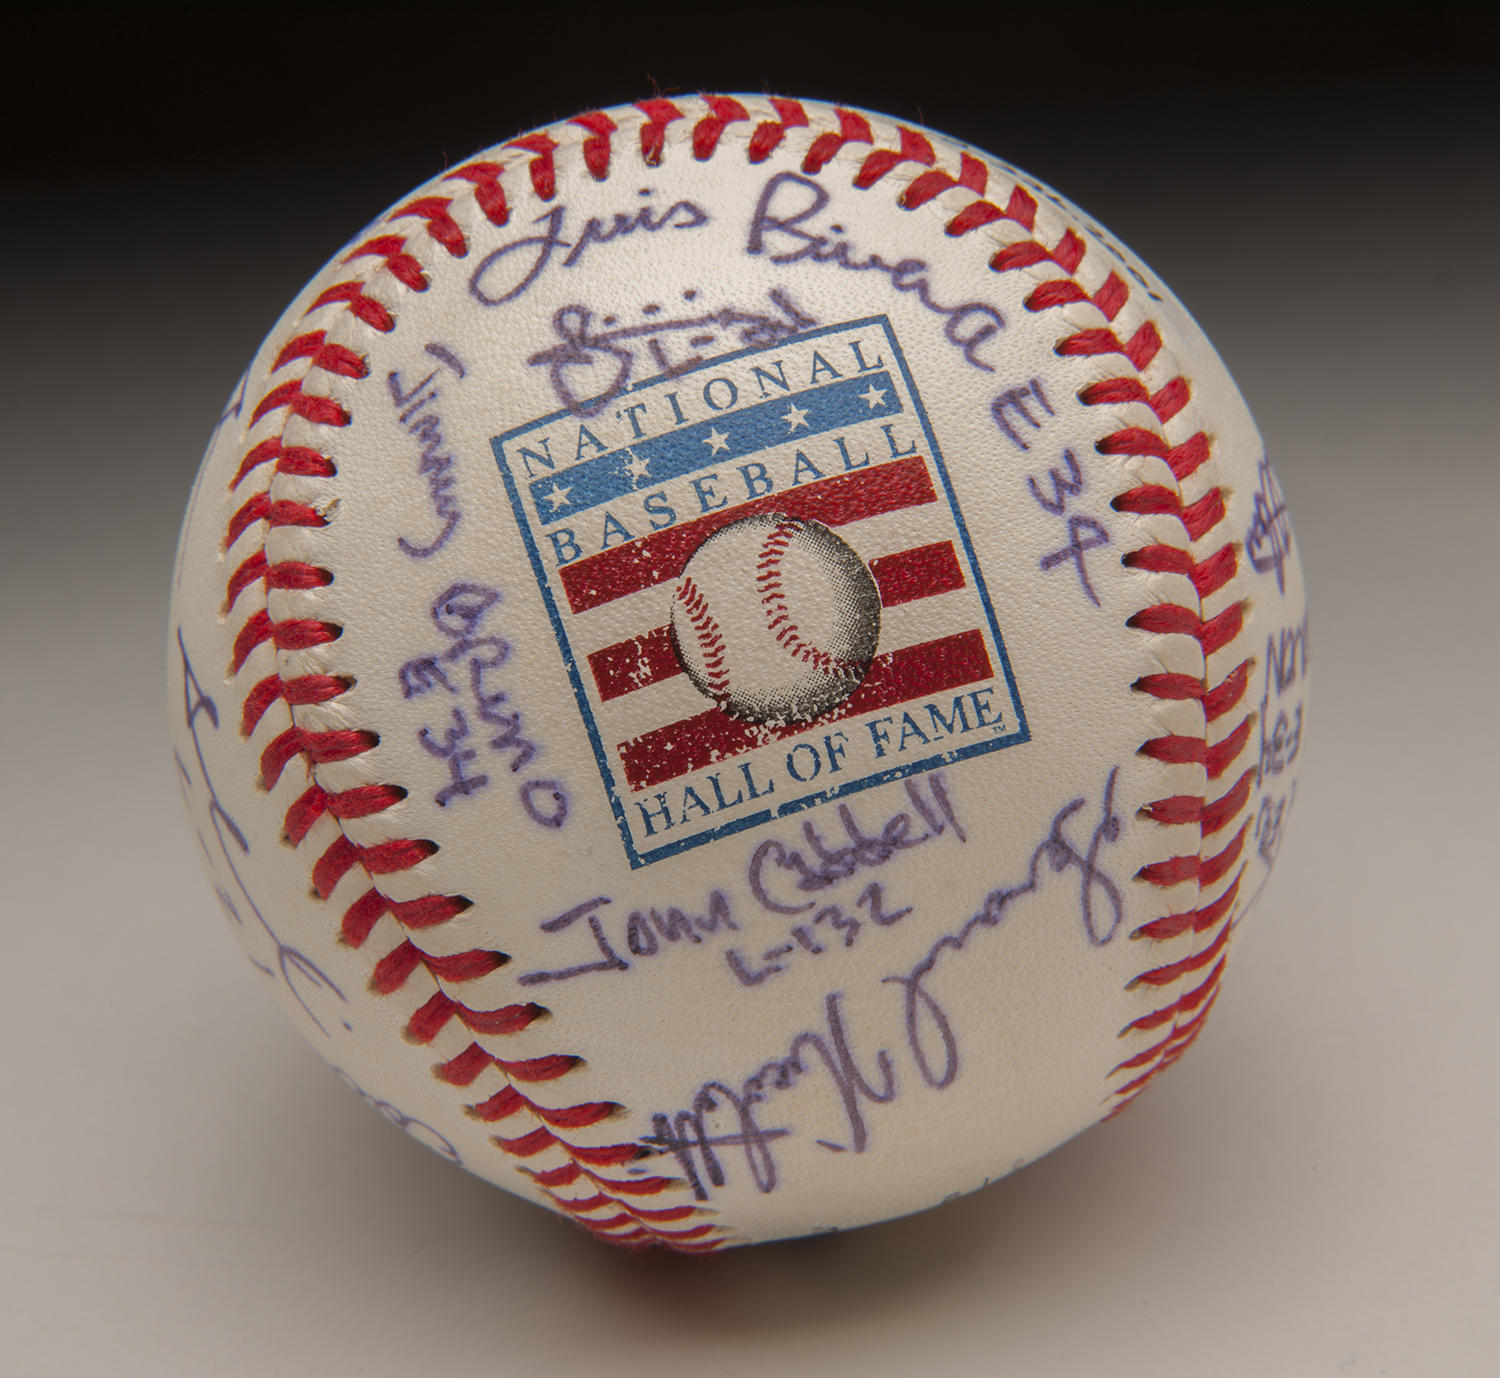 This baseball was signed by members of Station 26 in New York City's Hell's Kitchen district, who received a visit from Hall of Famers shortly after 9/11. (Milo Stewart Jr. / National Baseball Hall of Fame)